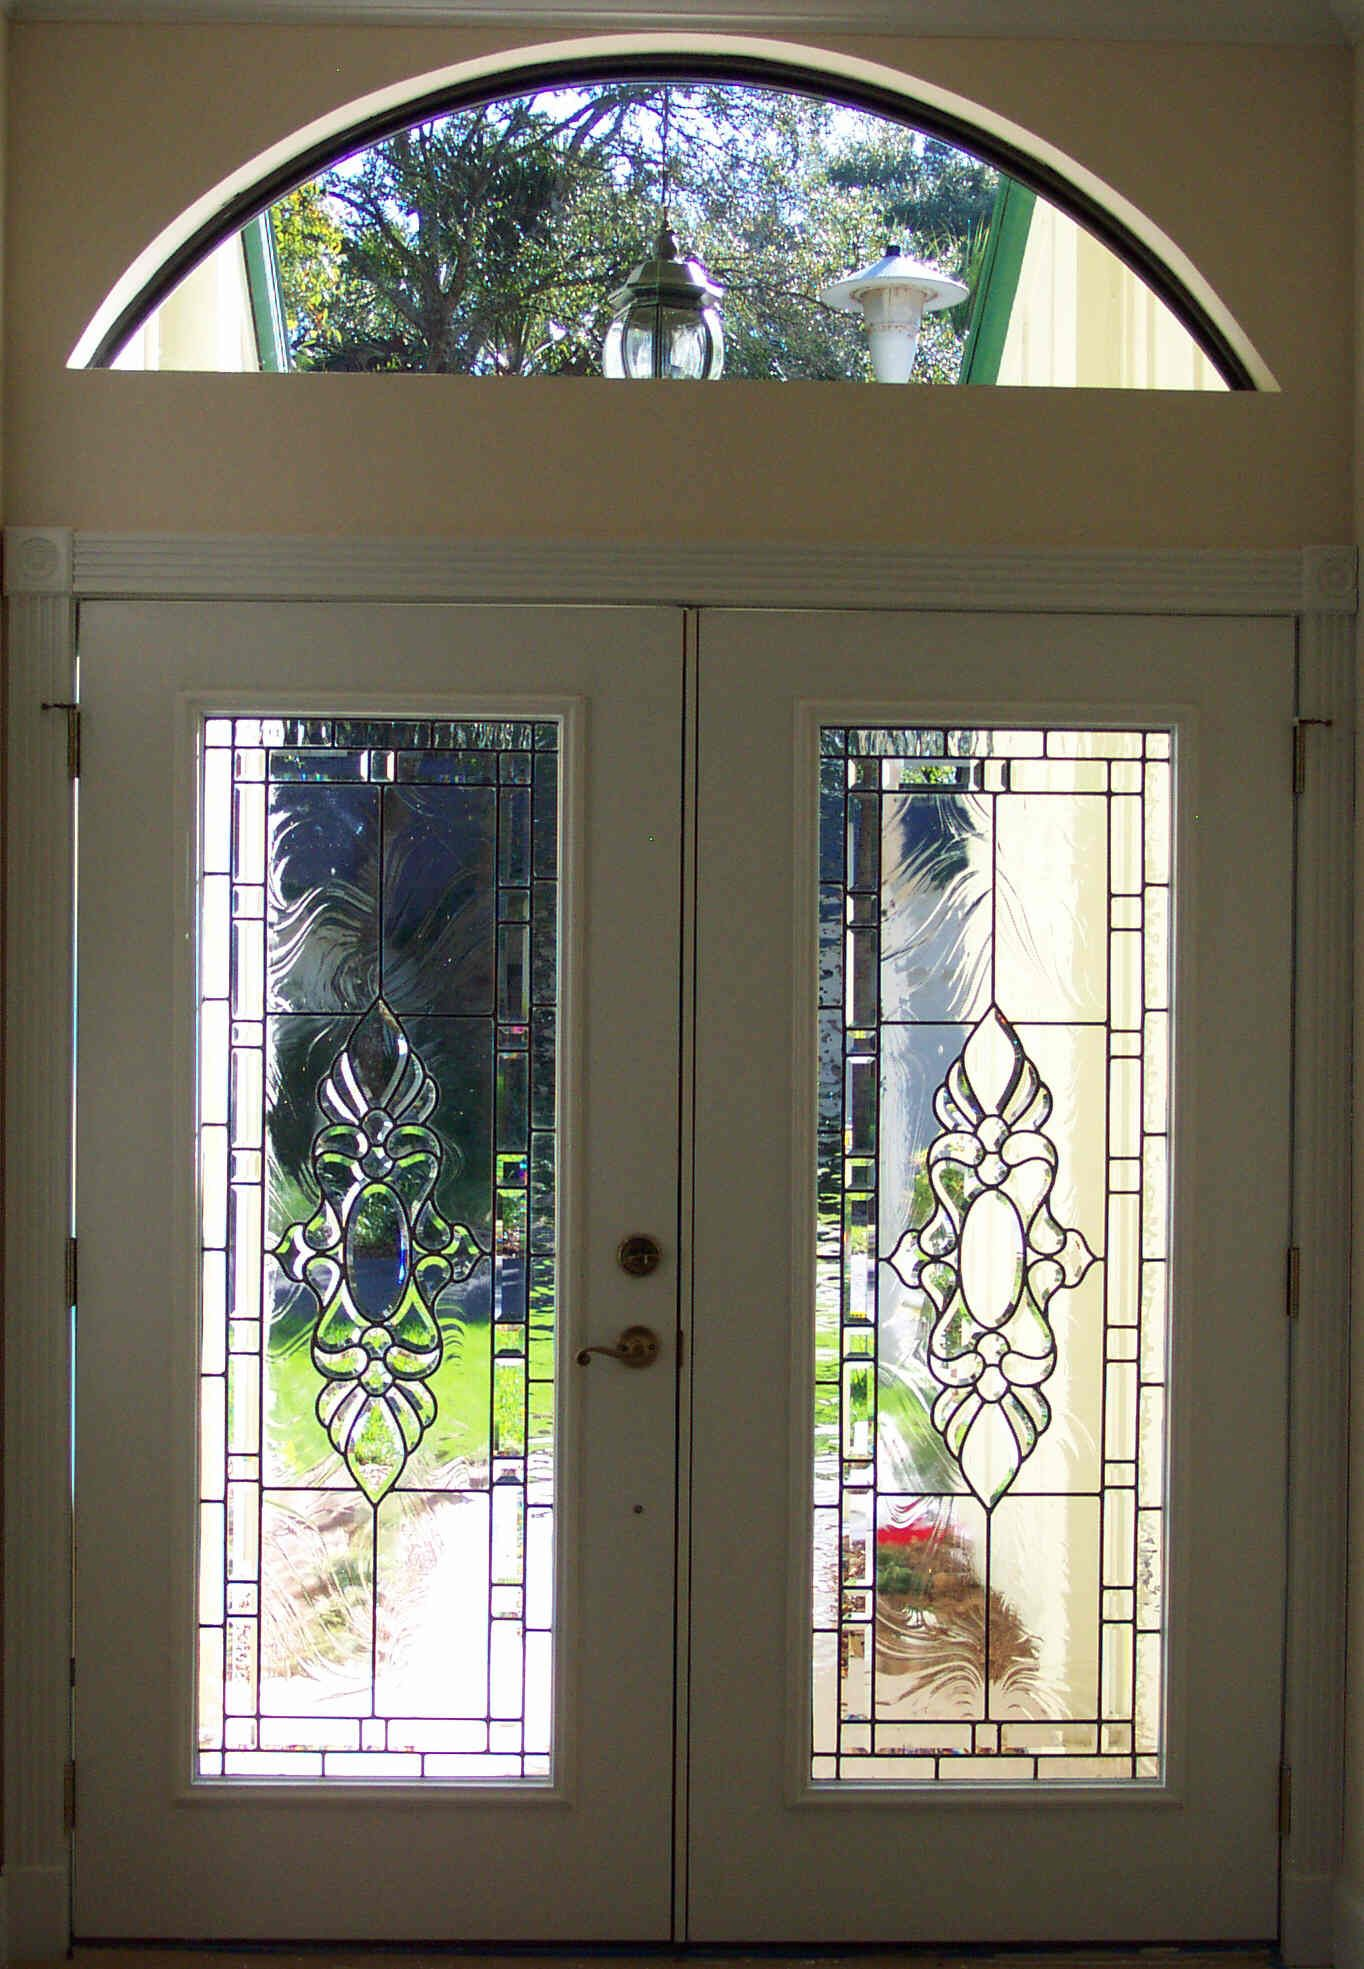 Custom Beveled Gl Door Inserts For Front Entry Created By Designer Art Daytona Beach Fl